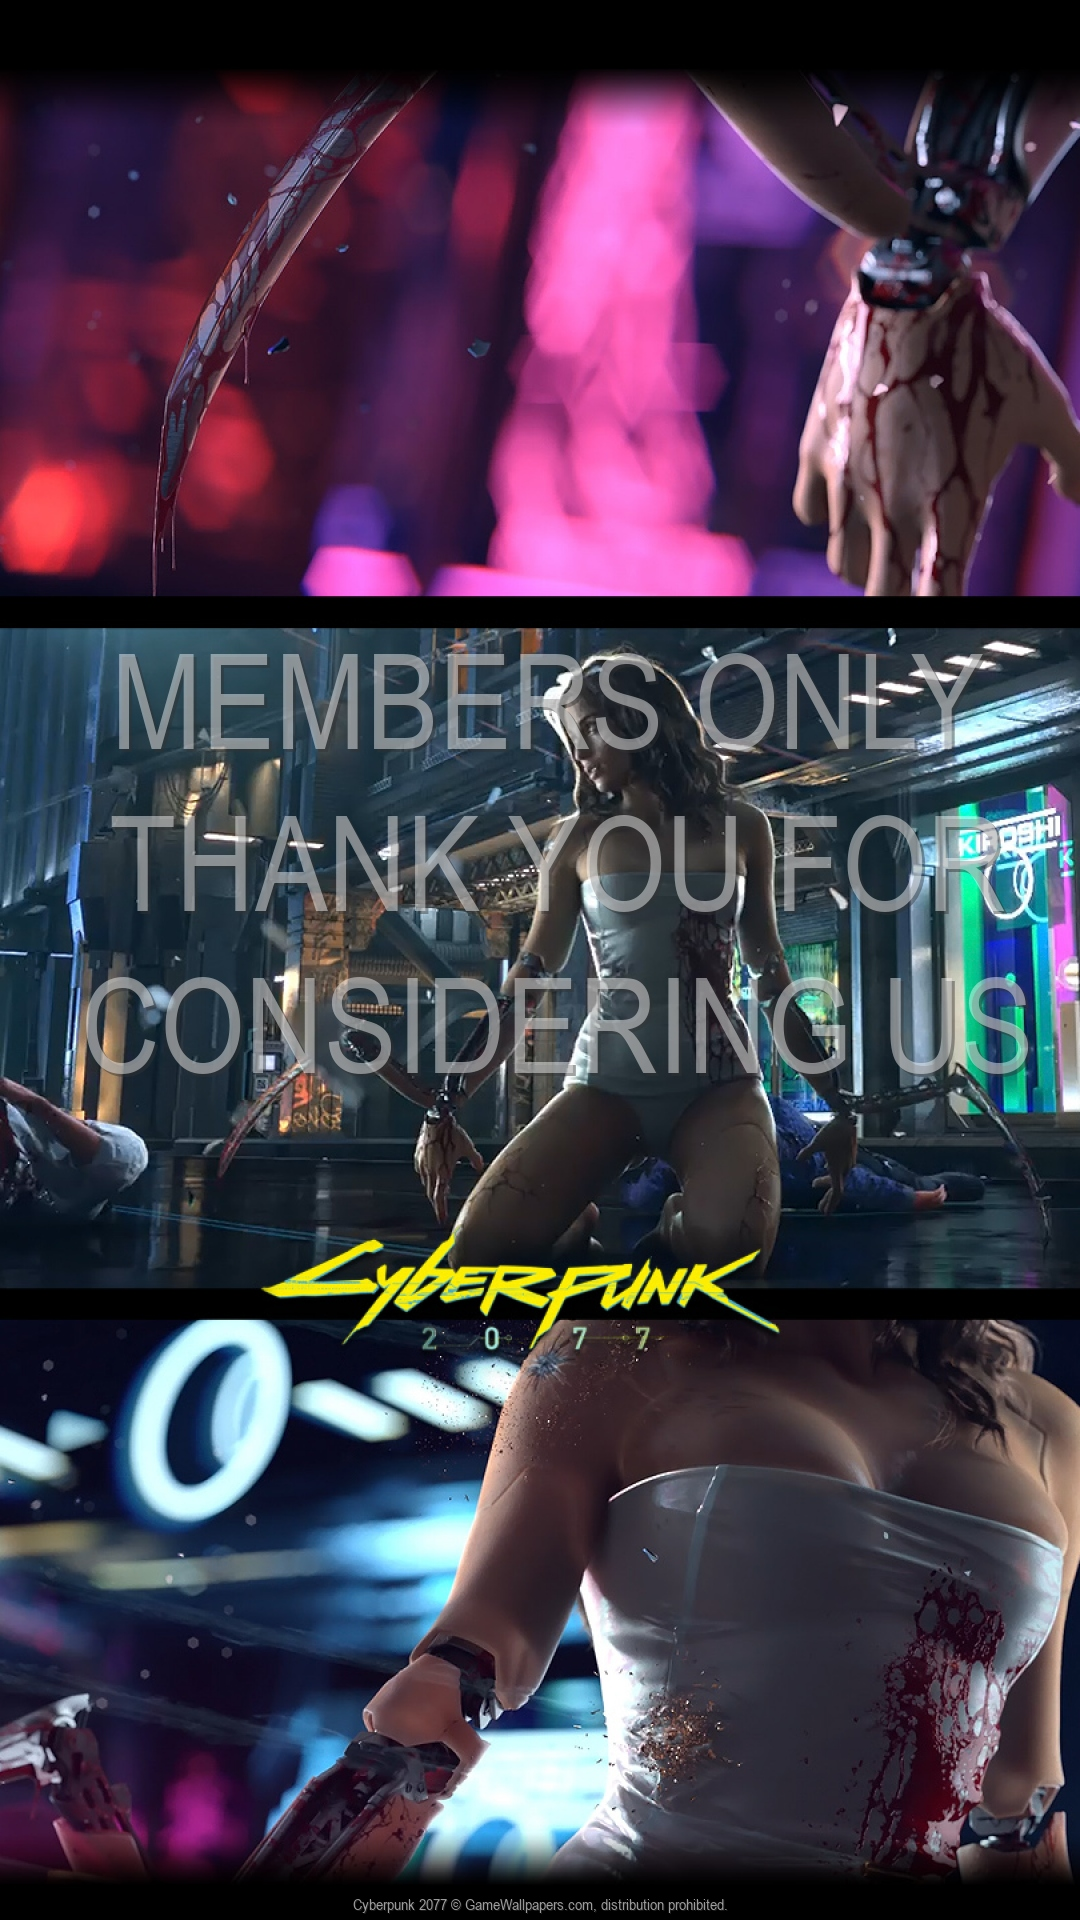 Cyberpunk 2077 1920x1080 Mobile wallpaper or background 02